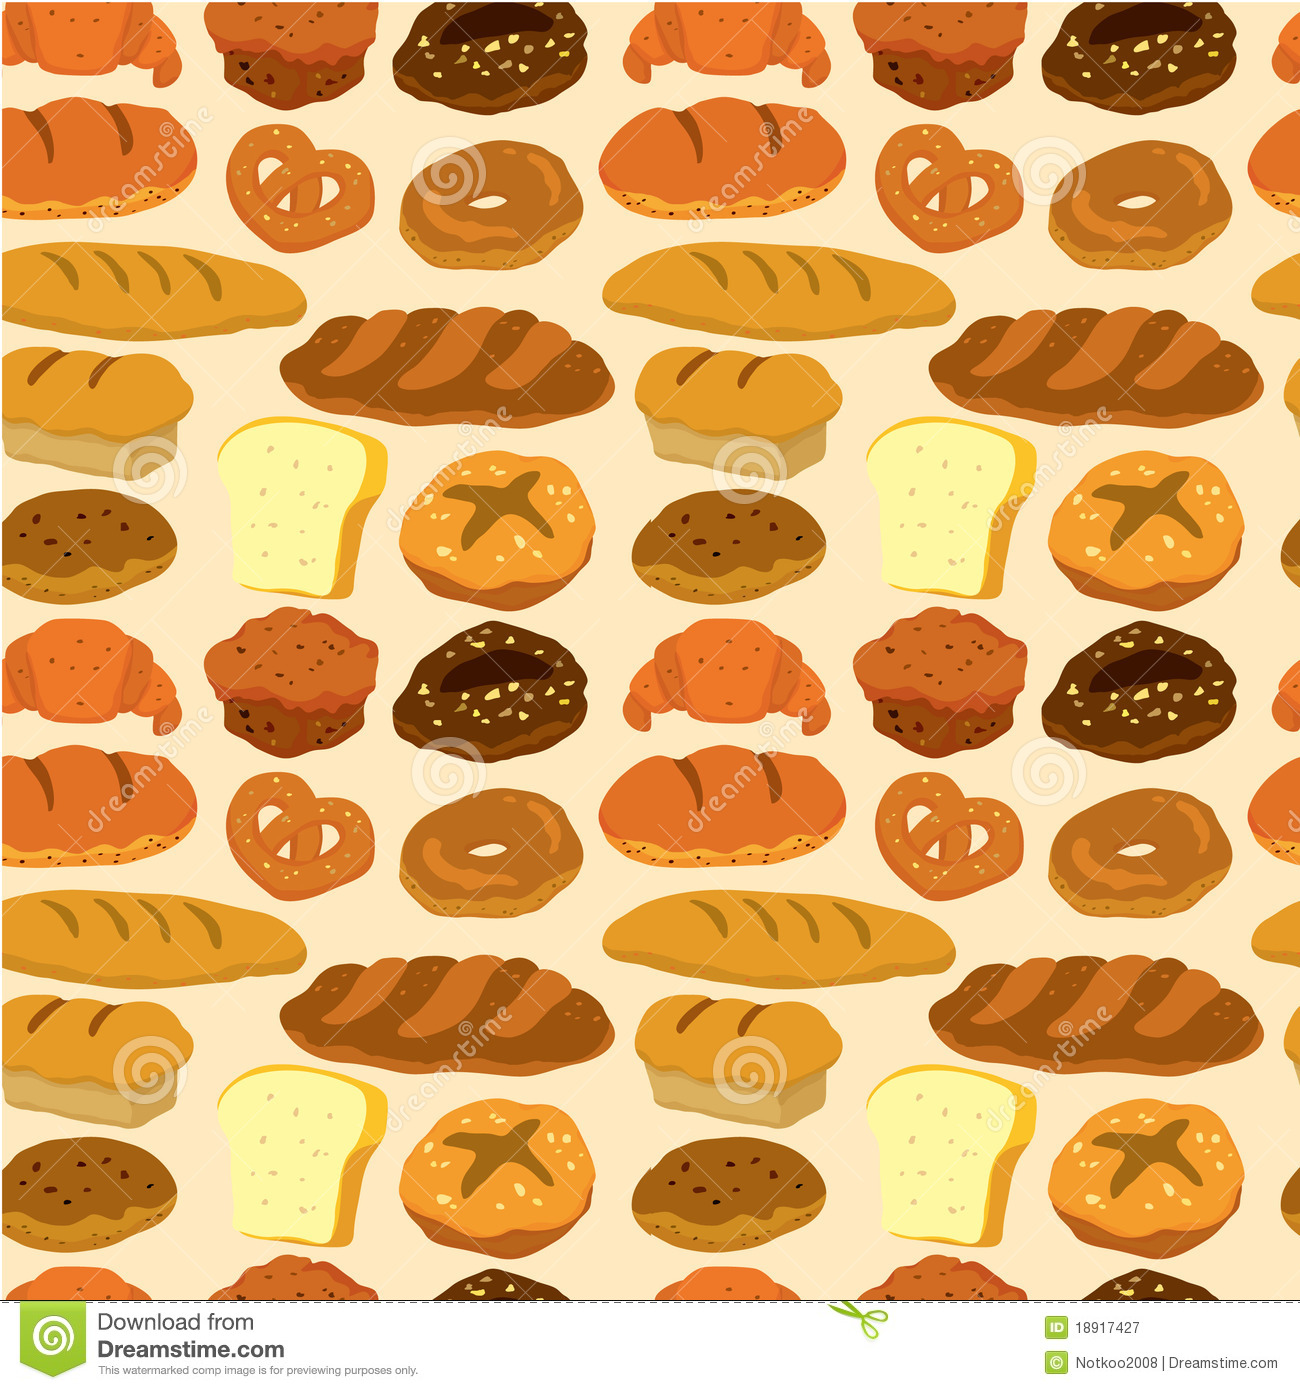 Bread pencil and in. Bakery clipart wallpaper